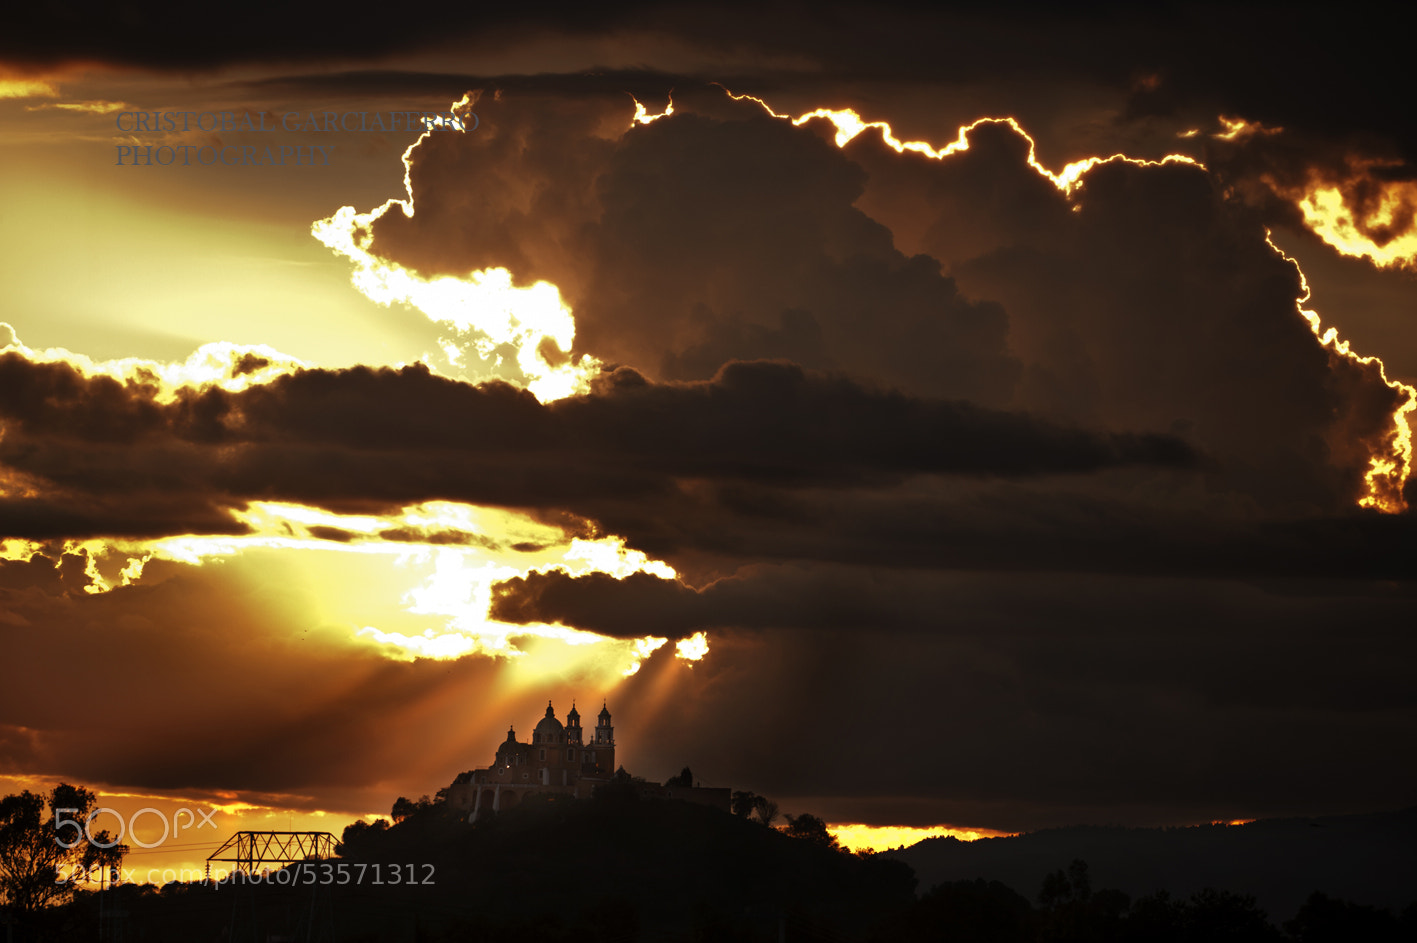 Photograph Clouds, Church, and Sunshine by Cristobal Garciaferro Rubio on 500px